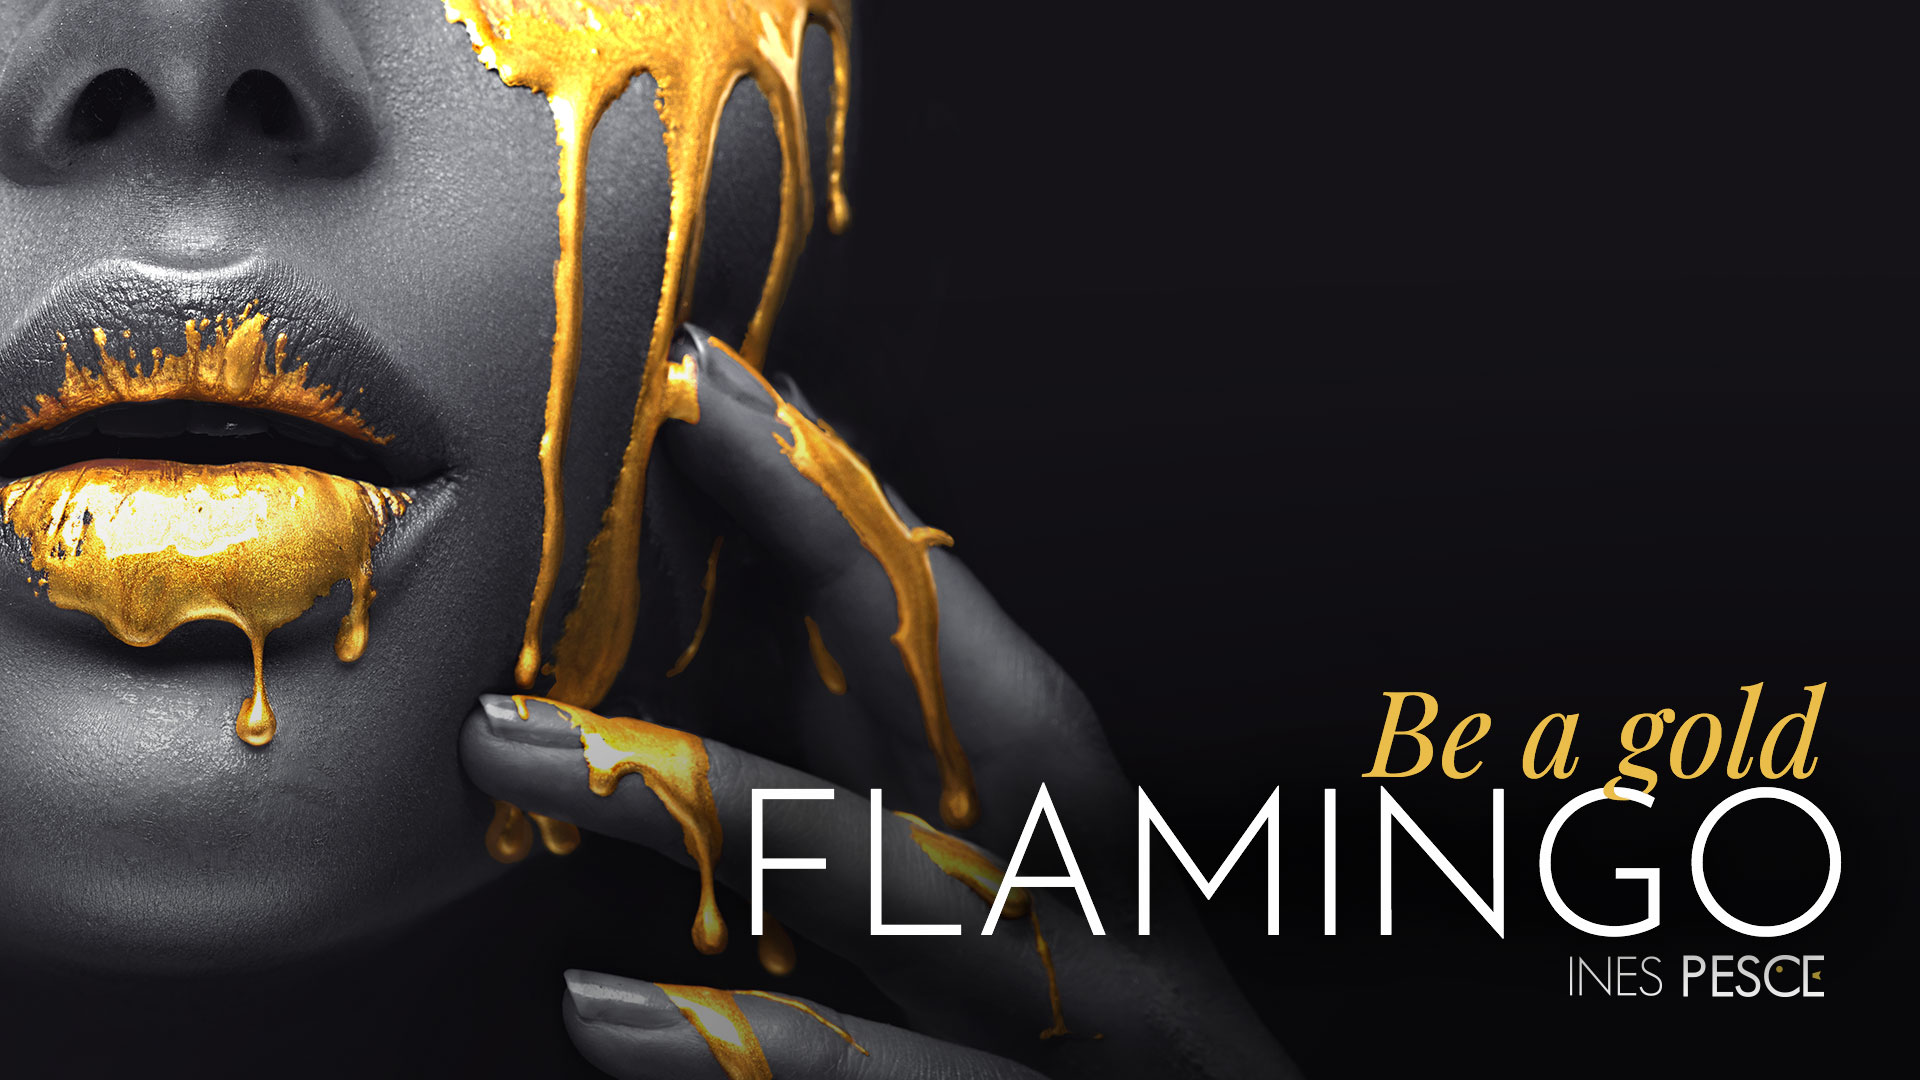 Be-a-gold-flamingo